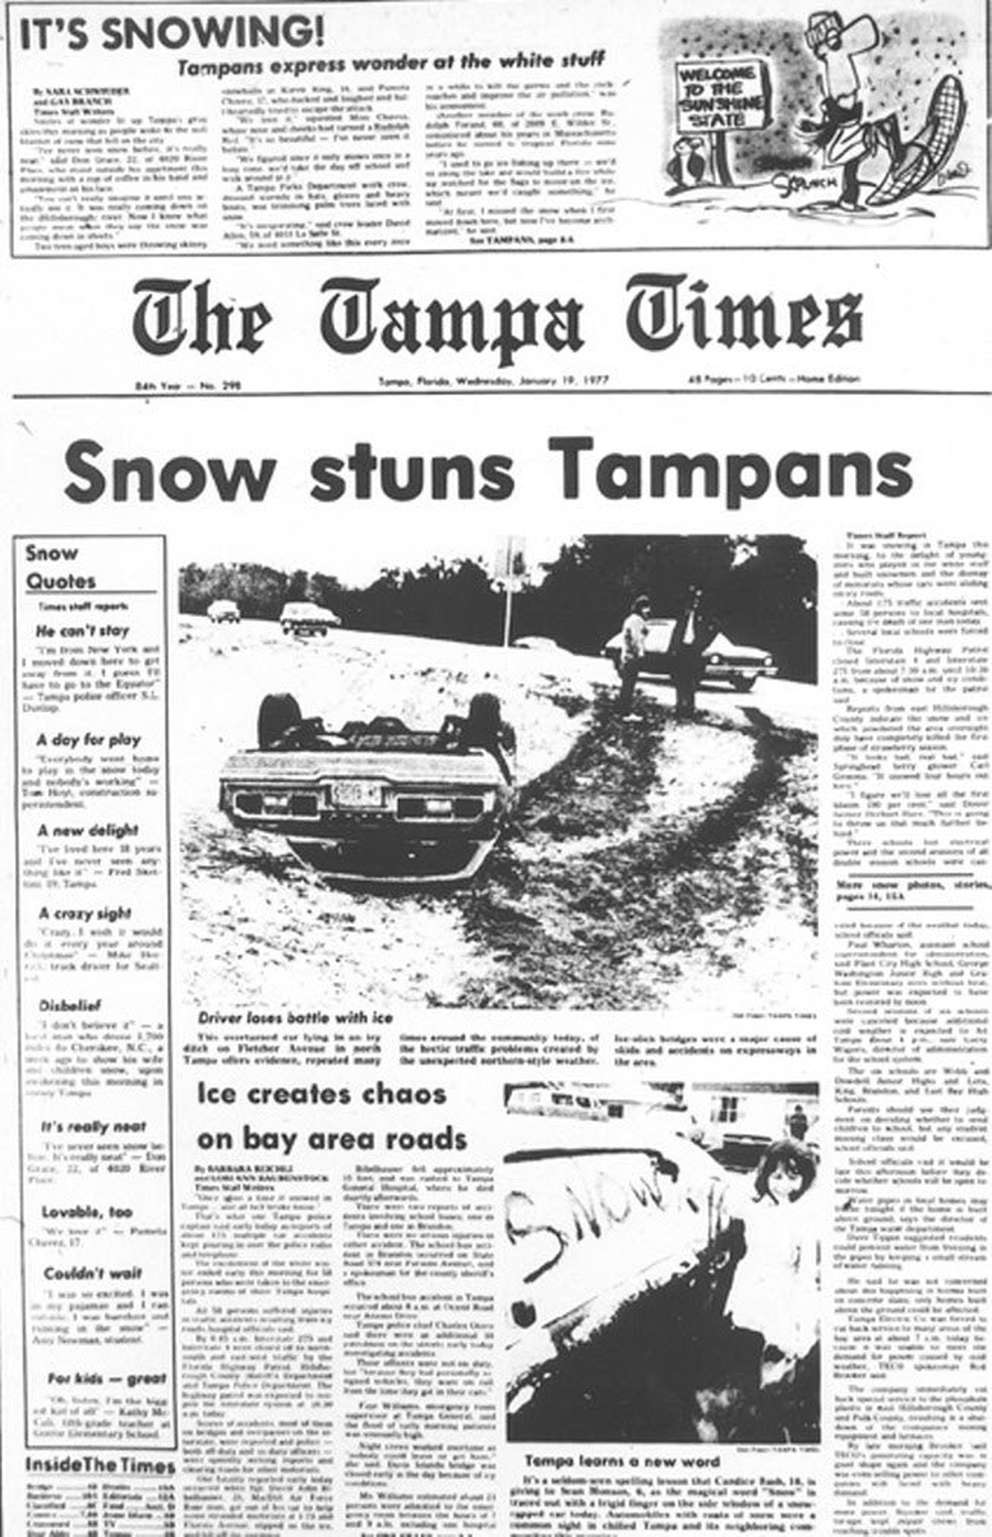 Tampa residents express wonder at the white stuff. [Times archives]